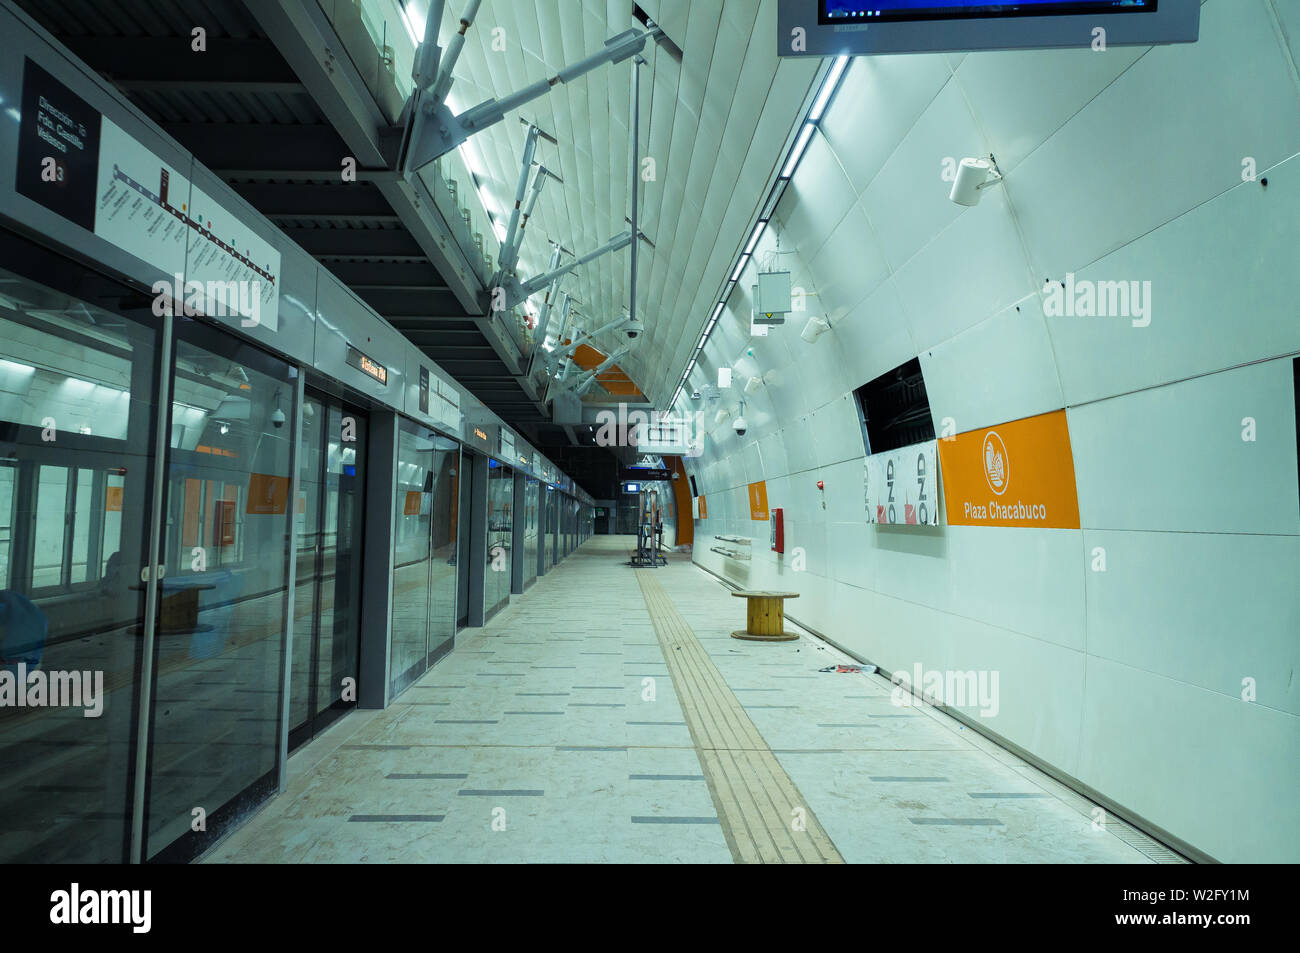 SANTIAGO, CHILE - NOVEMBER 2018: Plaza Chacabuco station of Line 3 before its inauguration - Stock Image